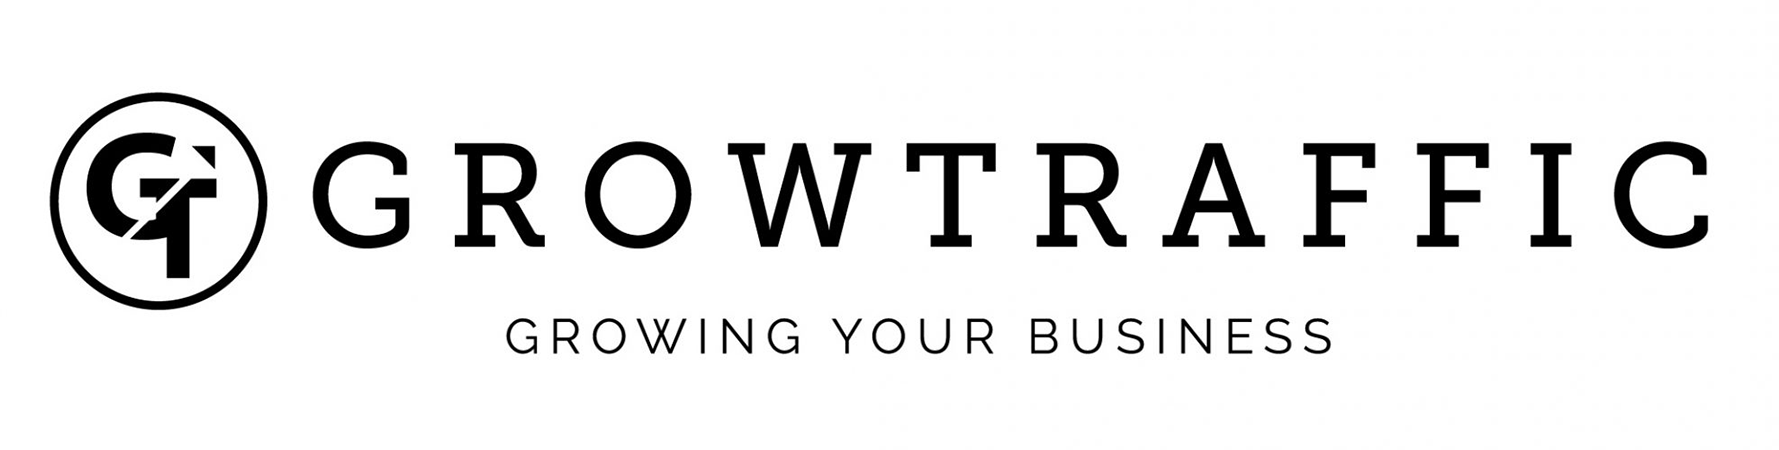 GrowTraffic logo